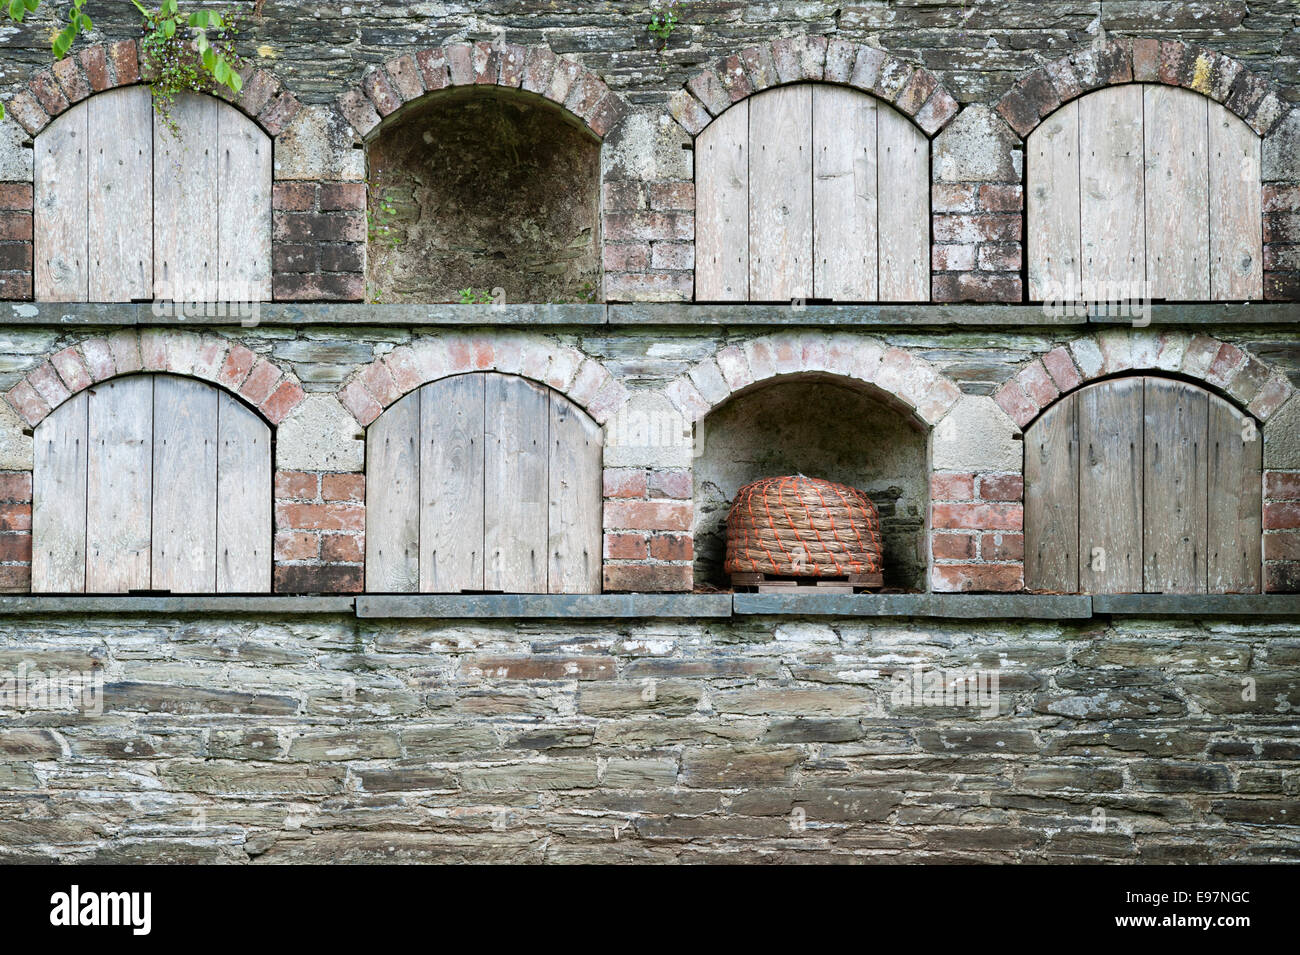 The Lost Gardens of Heligan, Cornwall, UK. A stone wall with built-in bee boles (alcoves), some containing straw - Stock Image